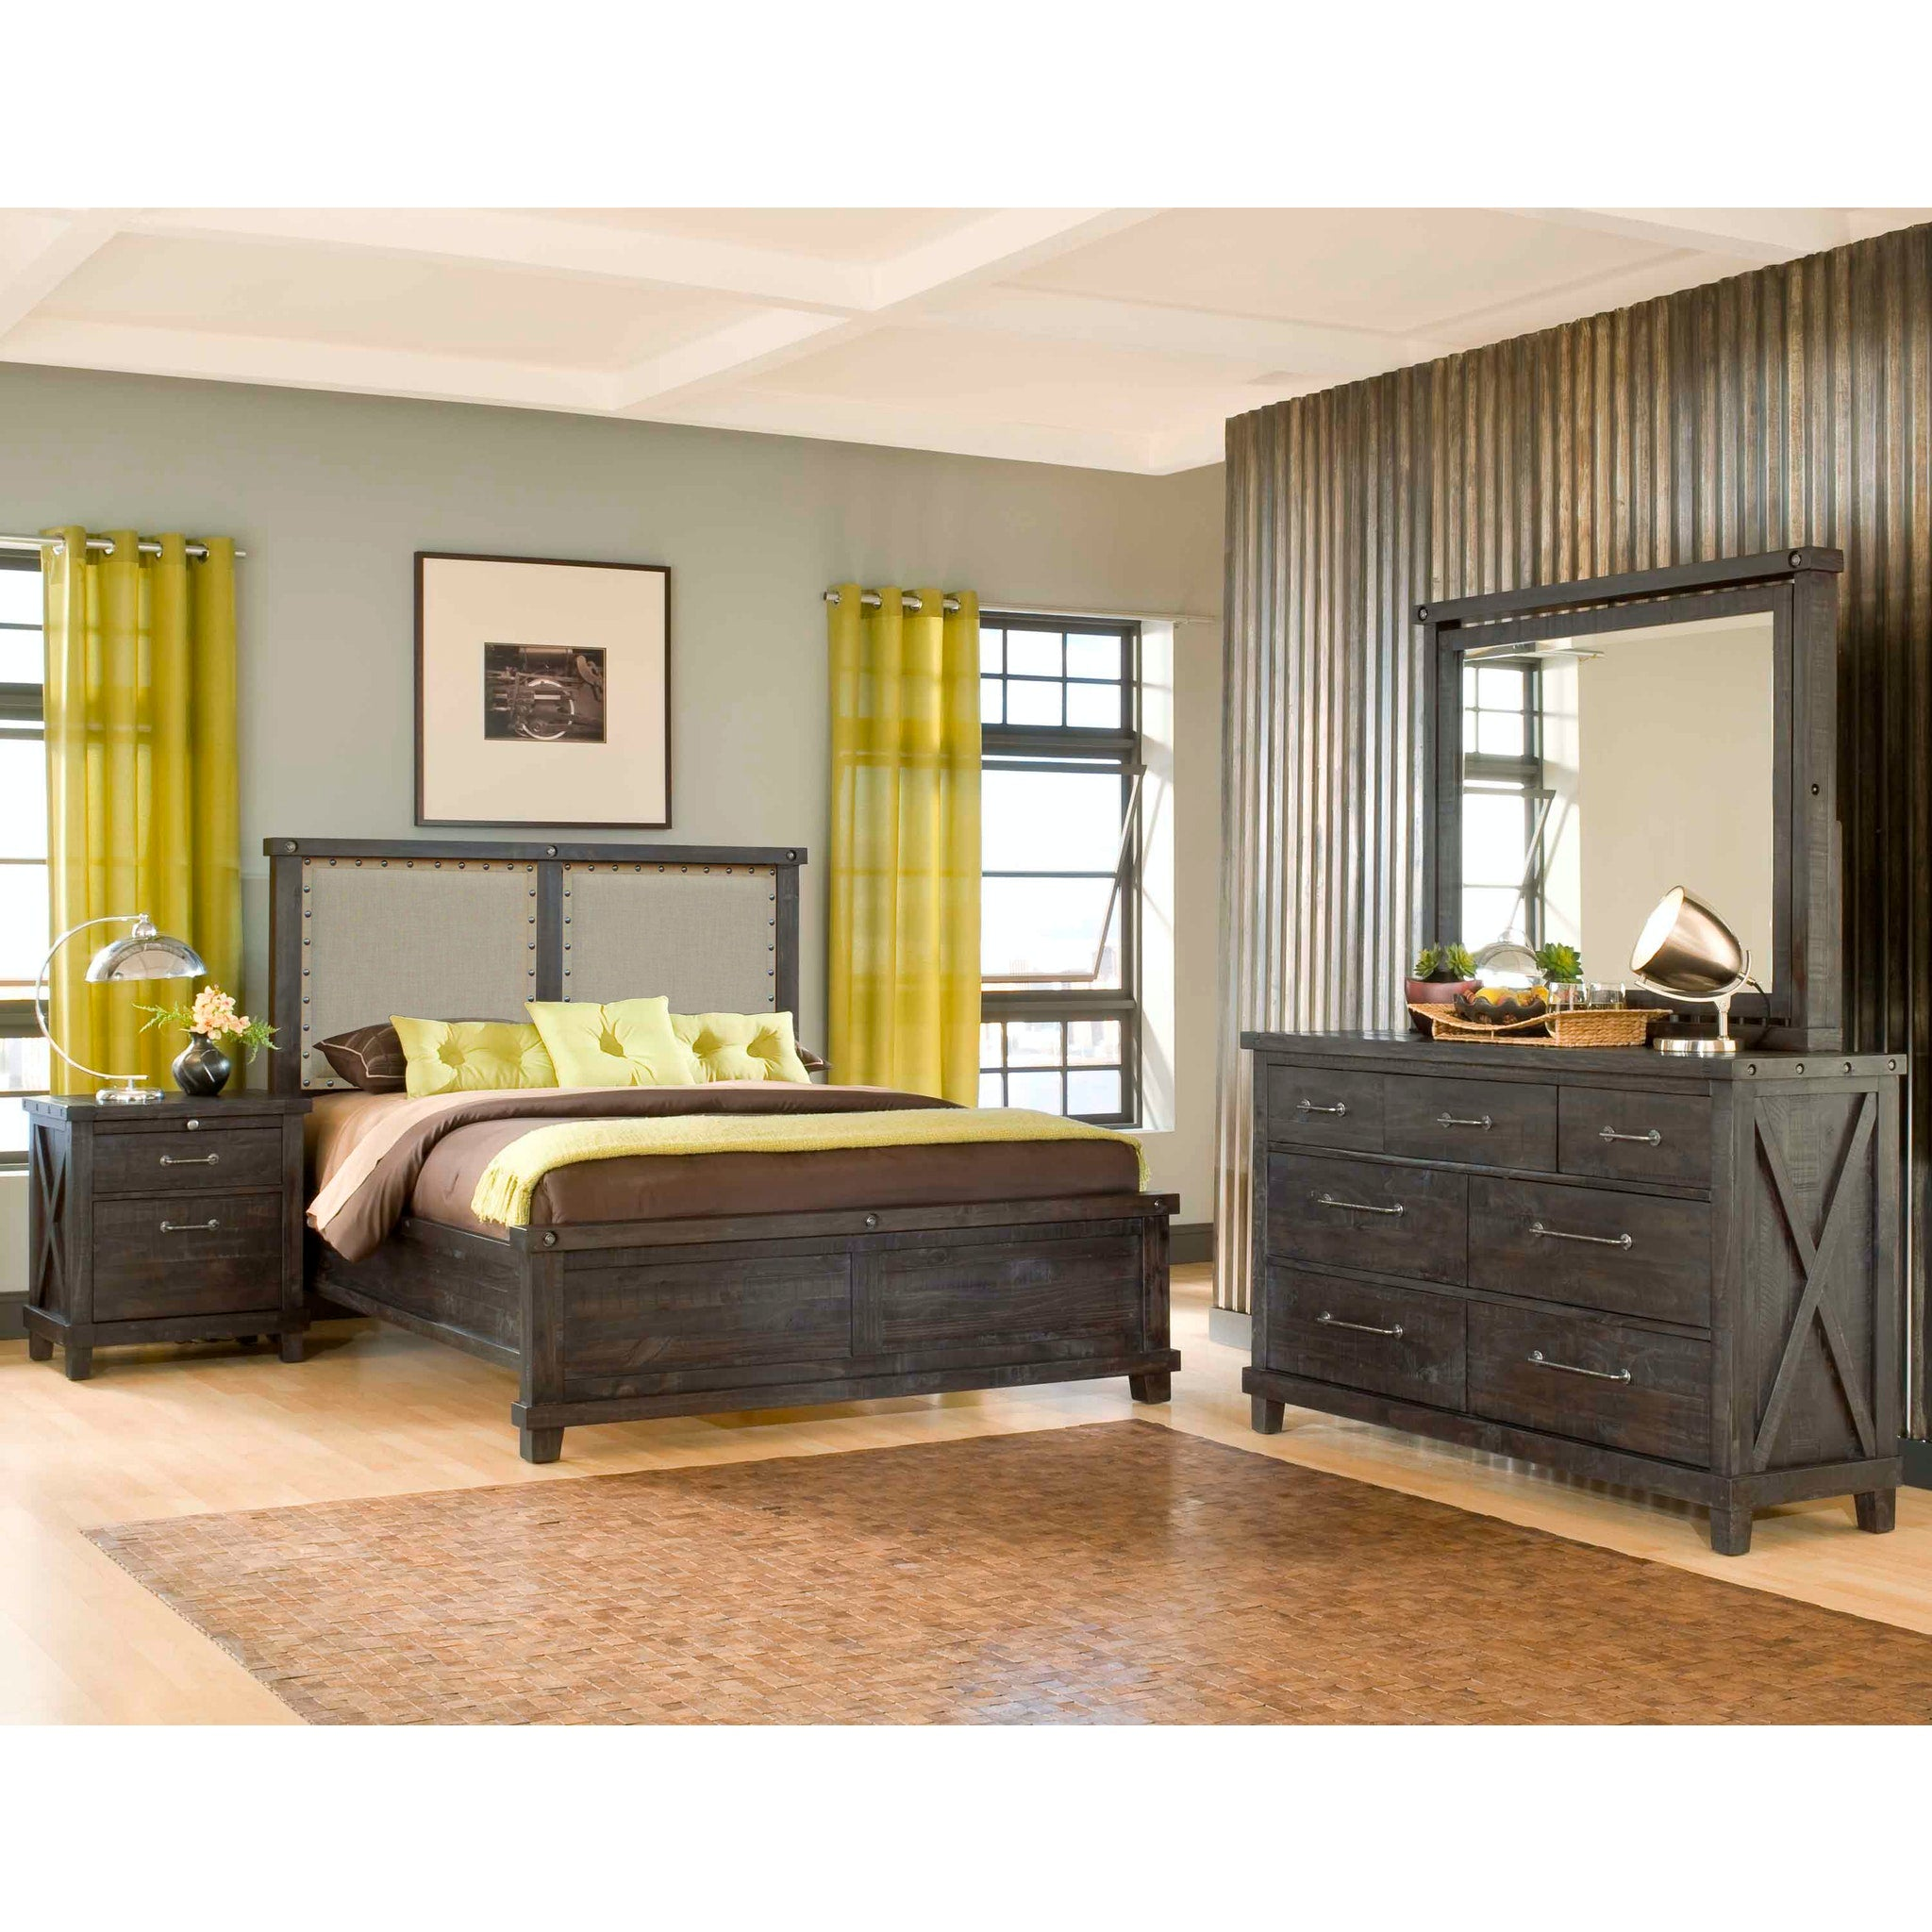 Yosemite Queen-size Upholstered Panel Bed in Café